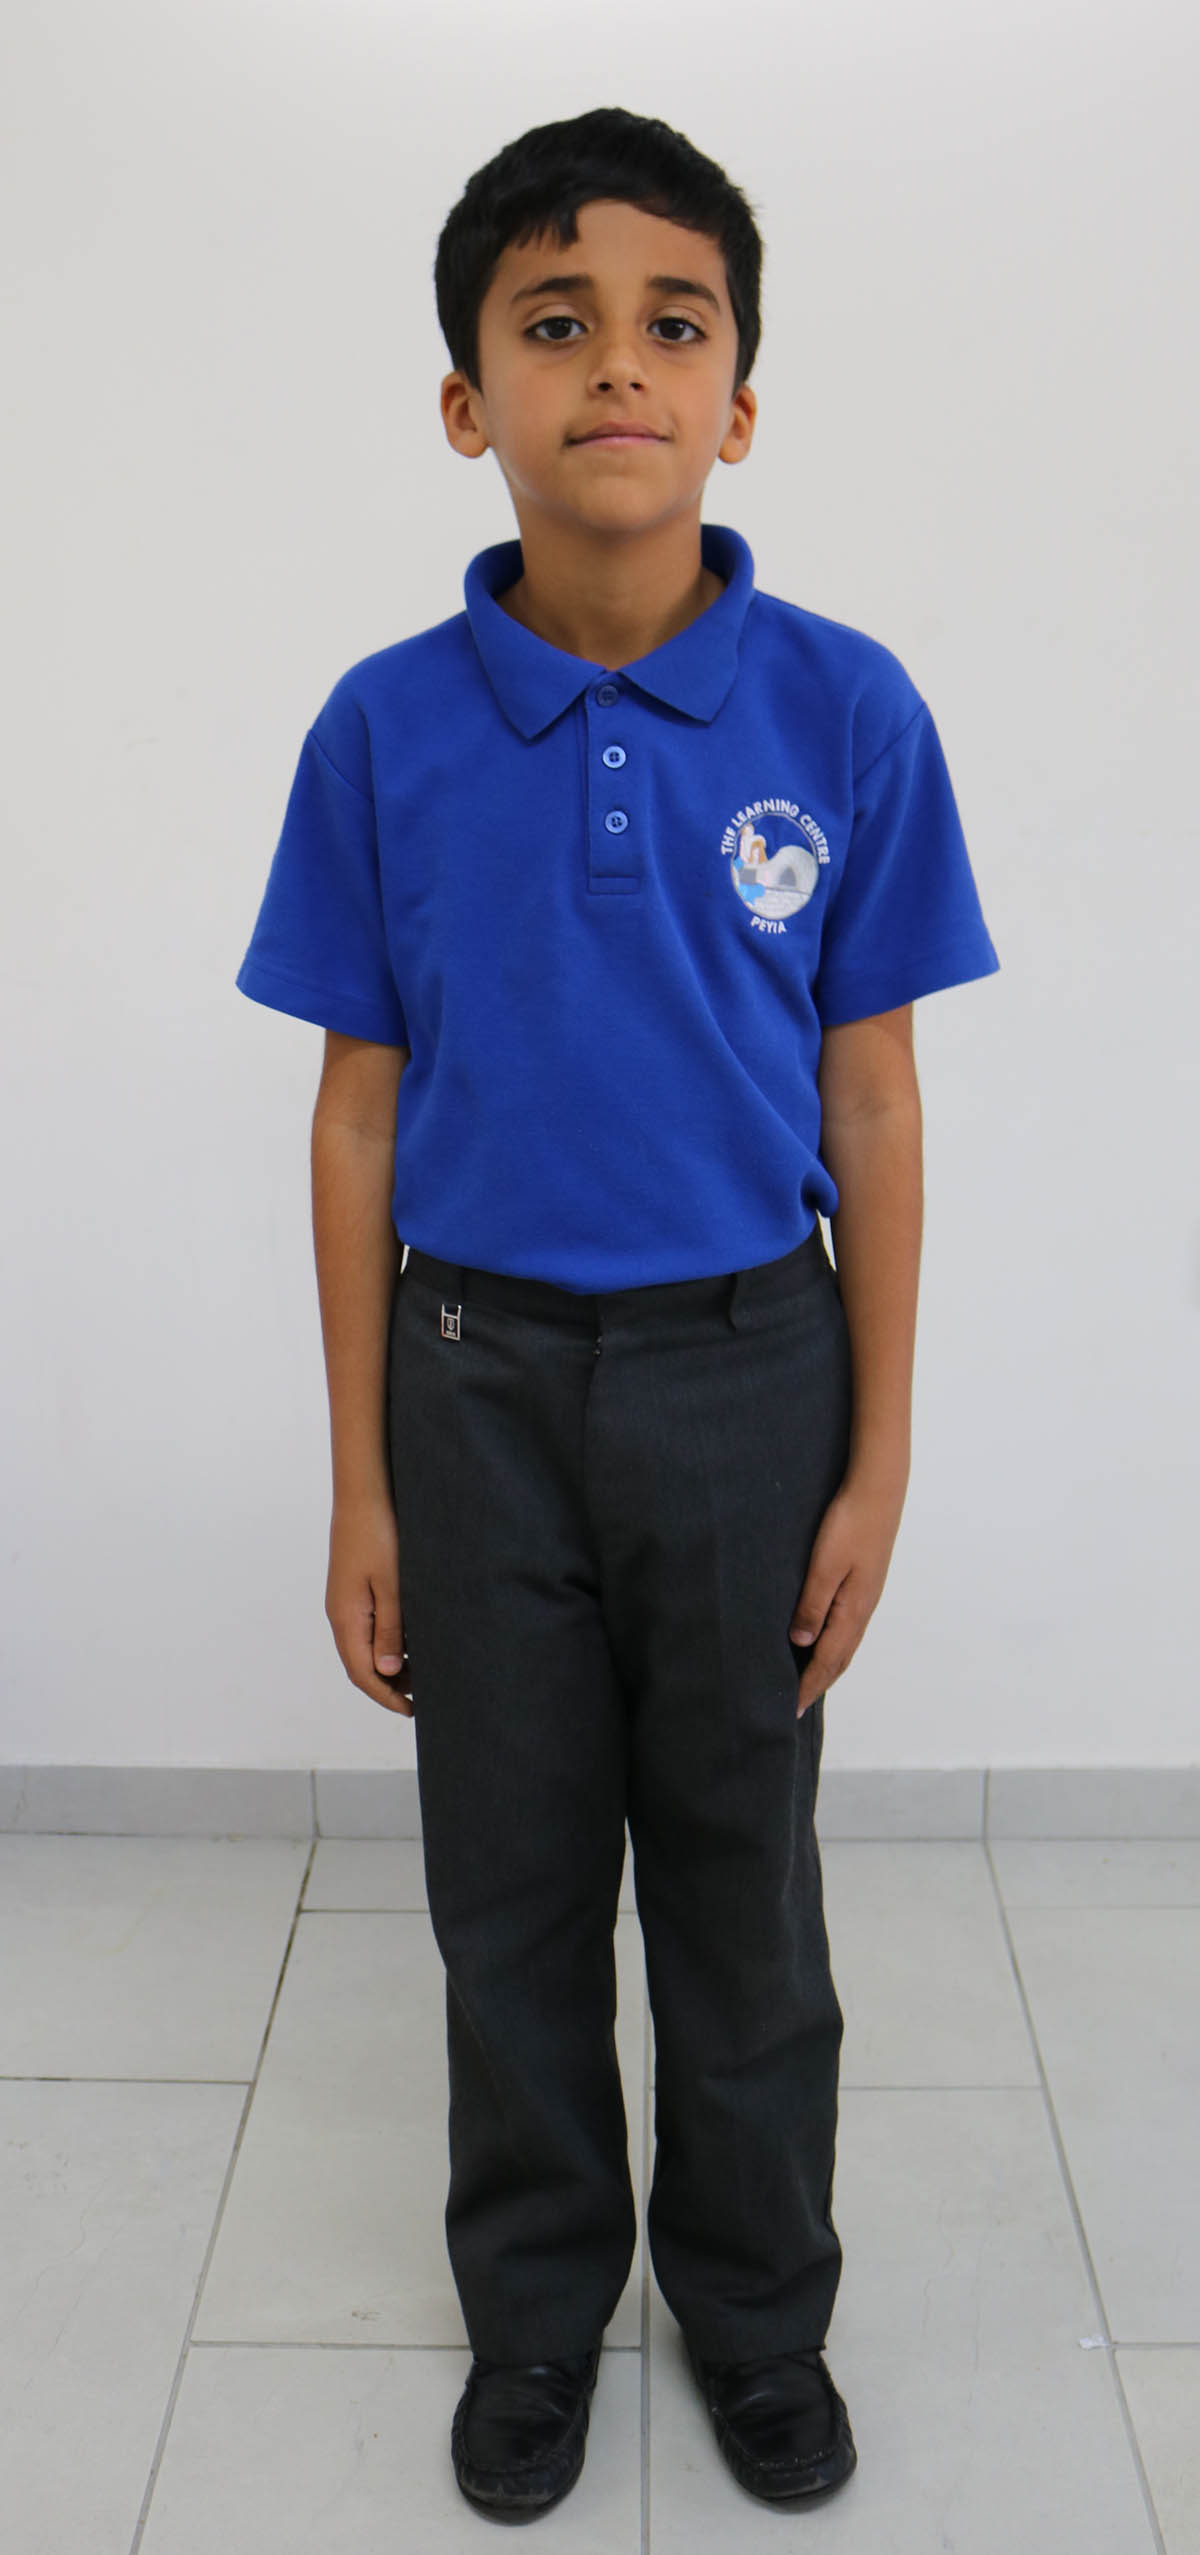 TLC Private School - School Uniform - Primary